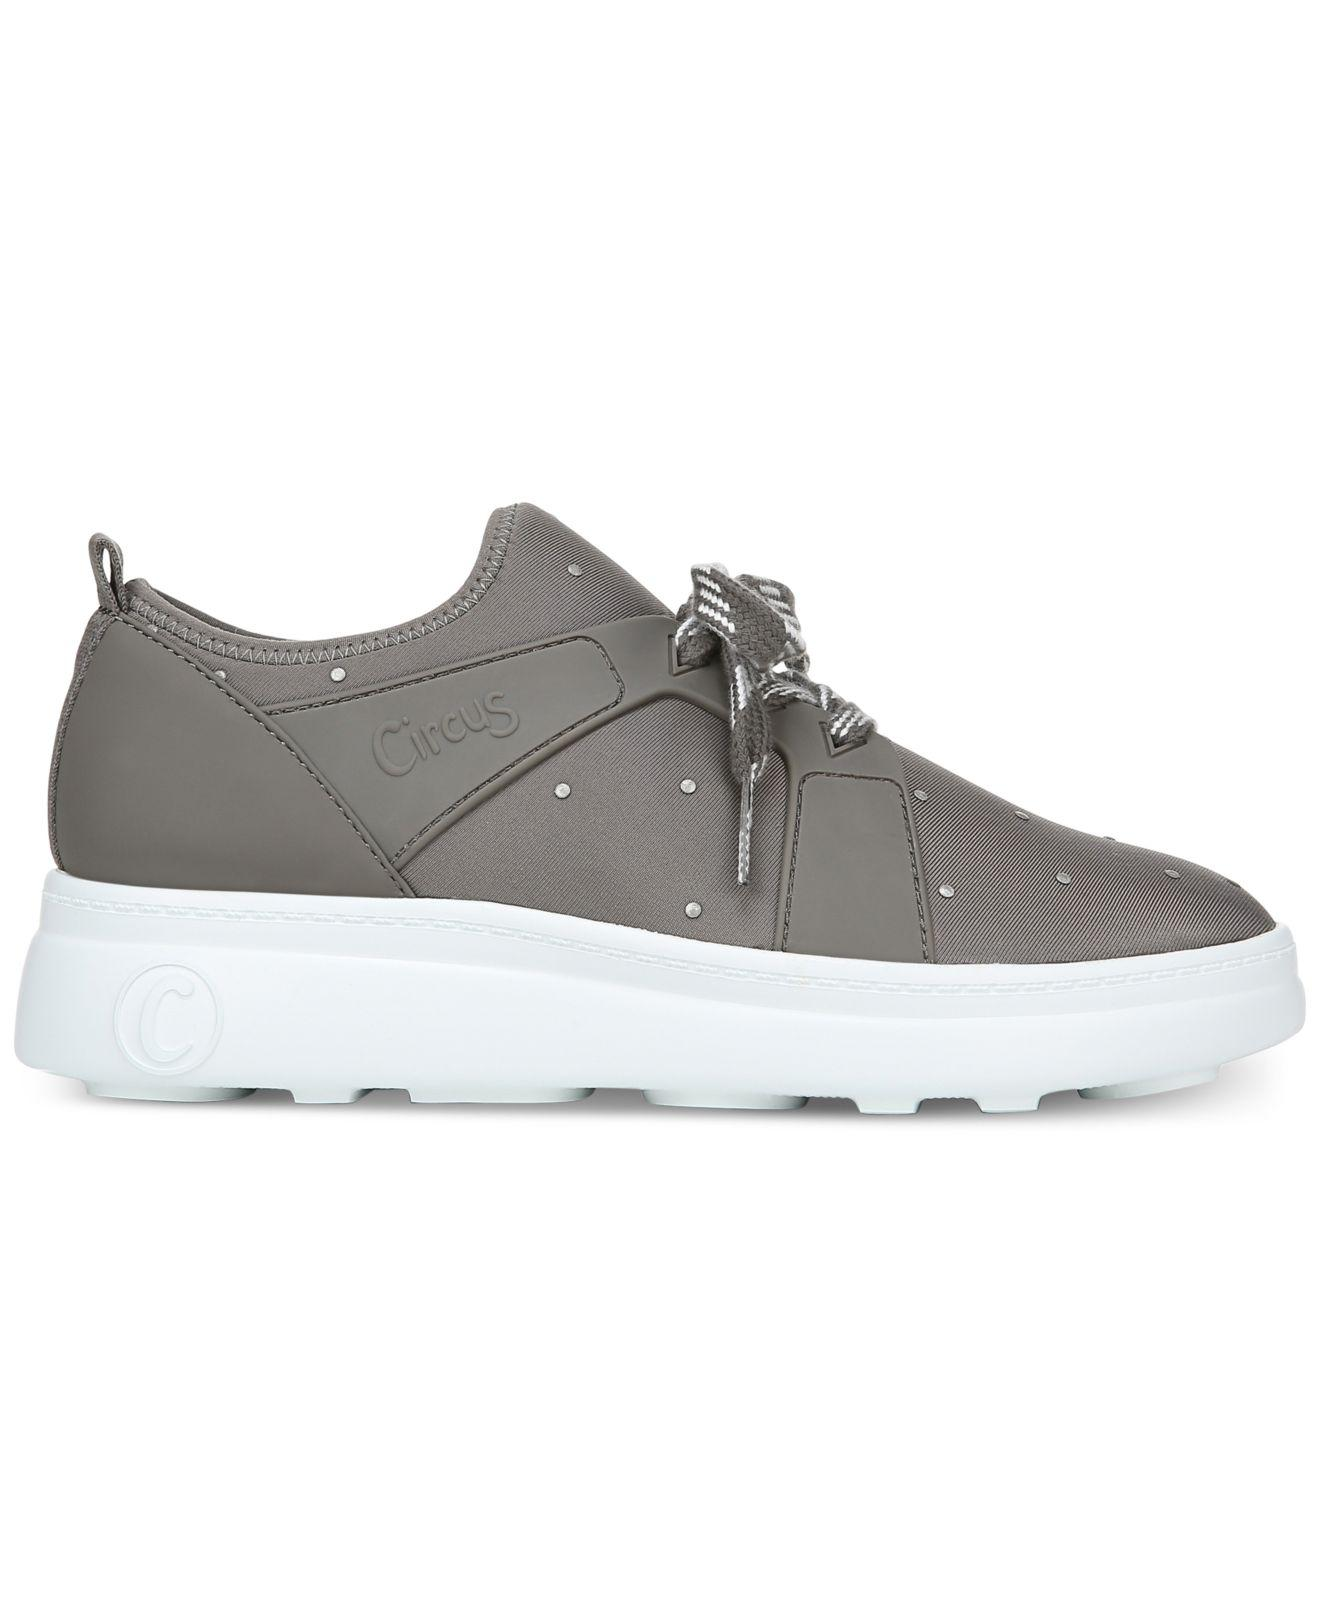 f206e0e9982eb Lyst - Circus by Sam Edelman Lakyn Athletic Sneakers in Gray